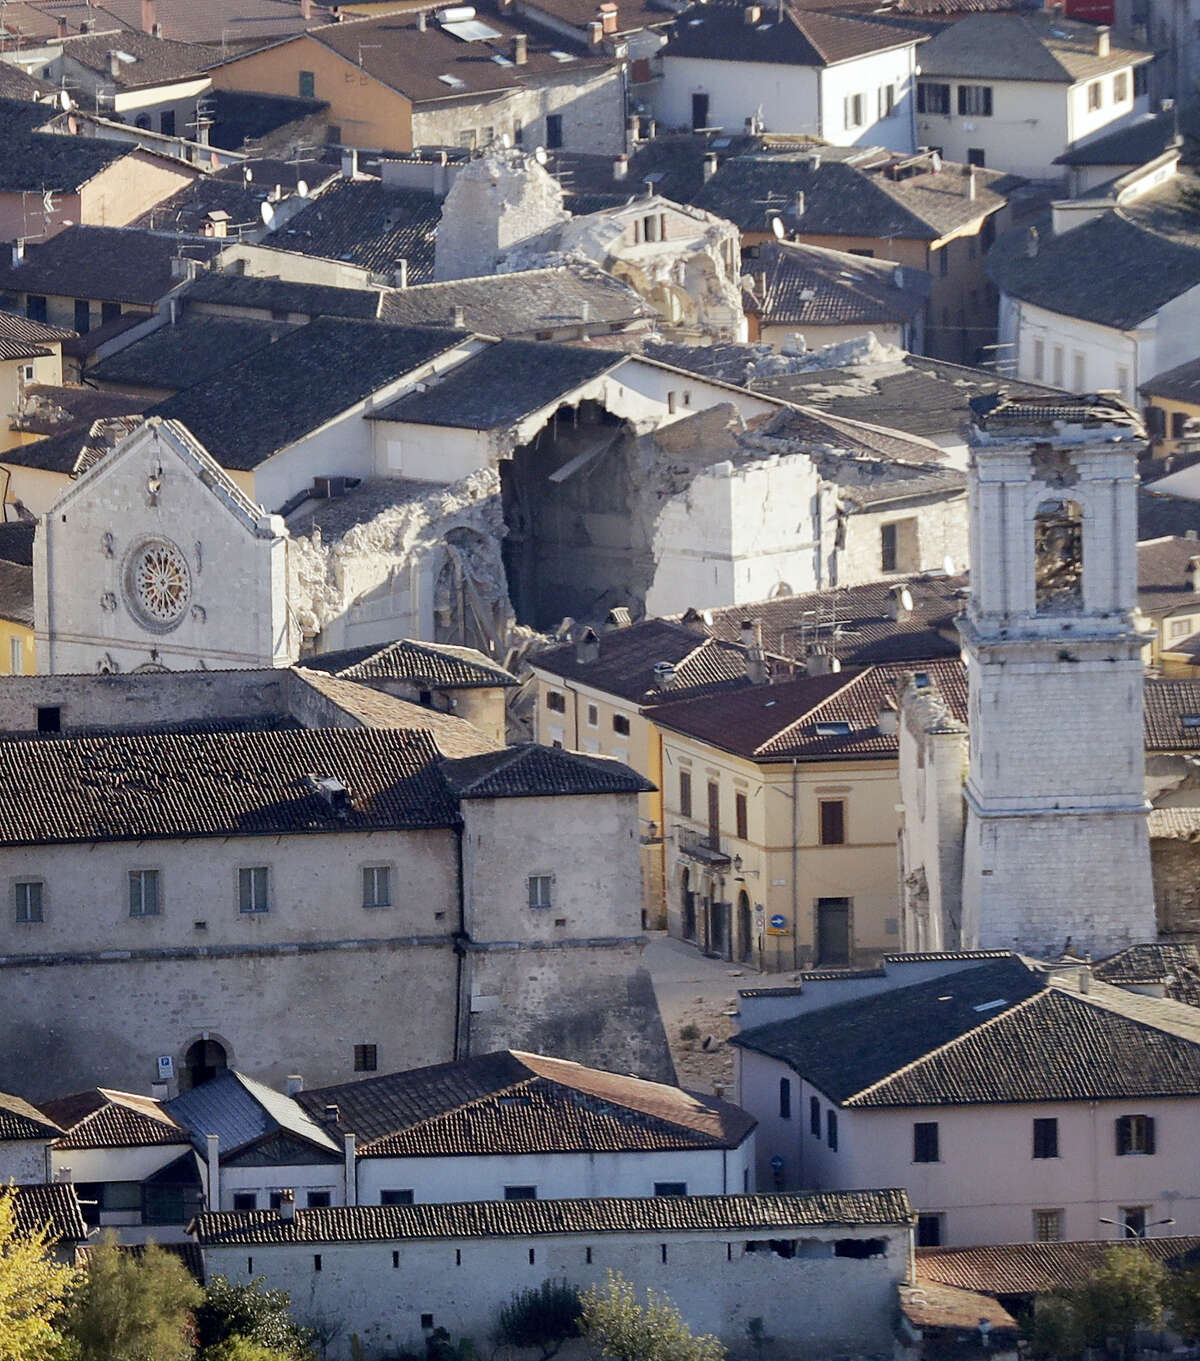 A general view shows a collapsed cathedral after an earthquake in Norcia, central Italy, Italy on Oct. 31, 2016. The third powerful earthquake to hit Italy in two months spared human life Sunday but struck at the nation's identity, destroying a Benedictine cathedral, a medieval tower and other beloved landmarks that had survived the earlier jolts across a mountainous region of small historic towns.